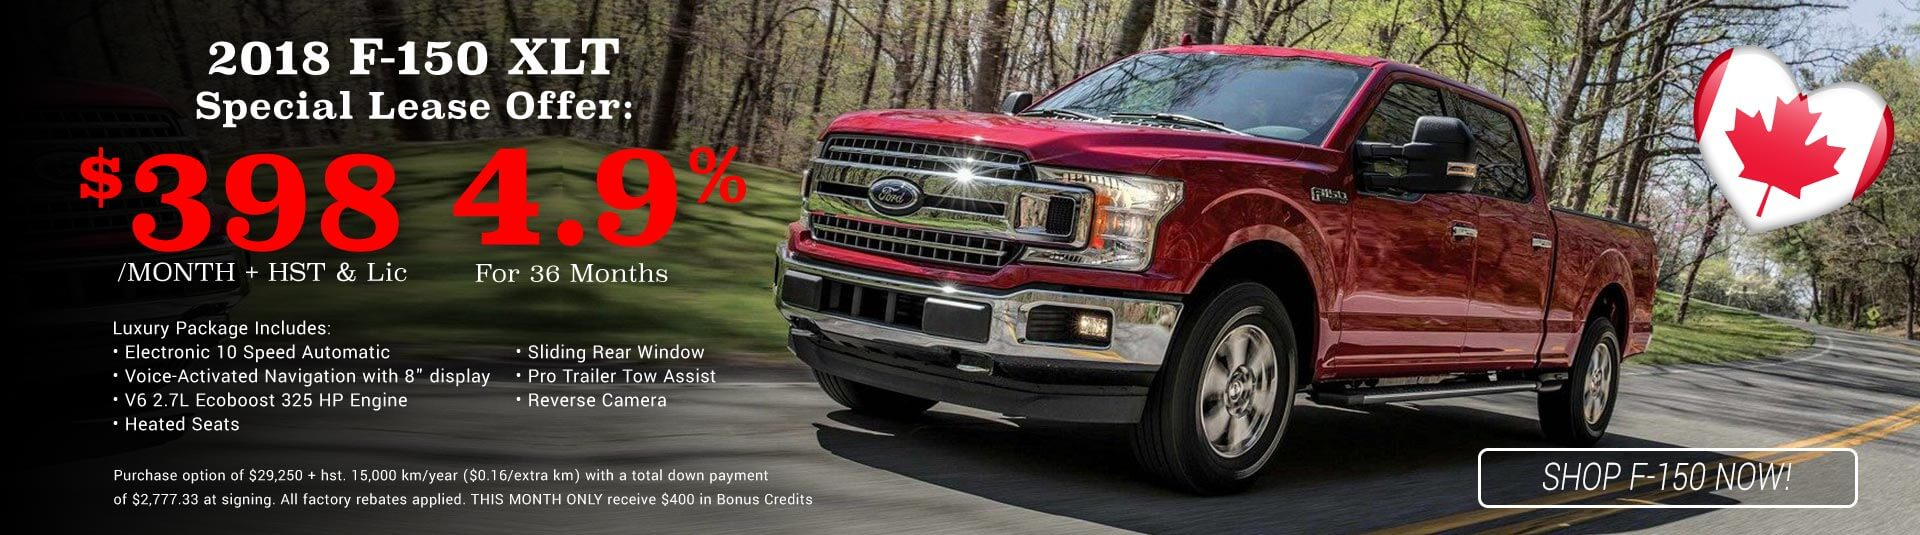 Ford 2018 F-150 Offers